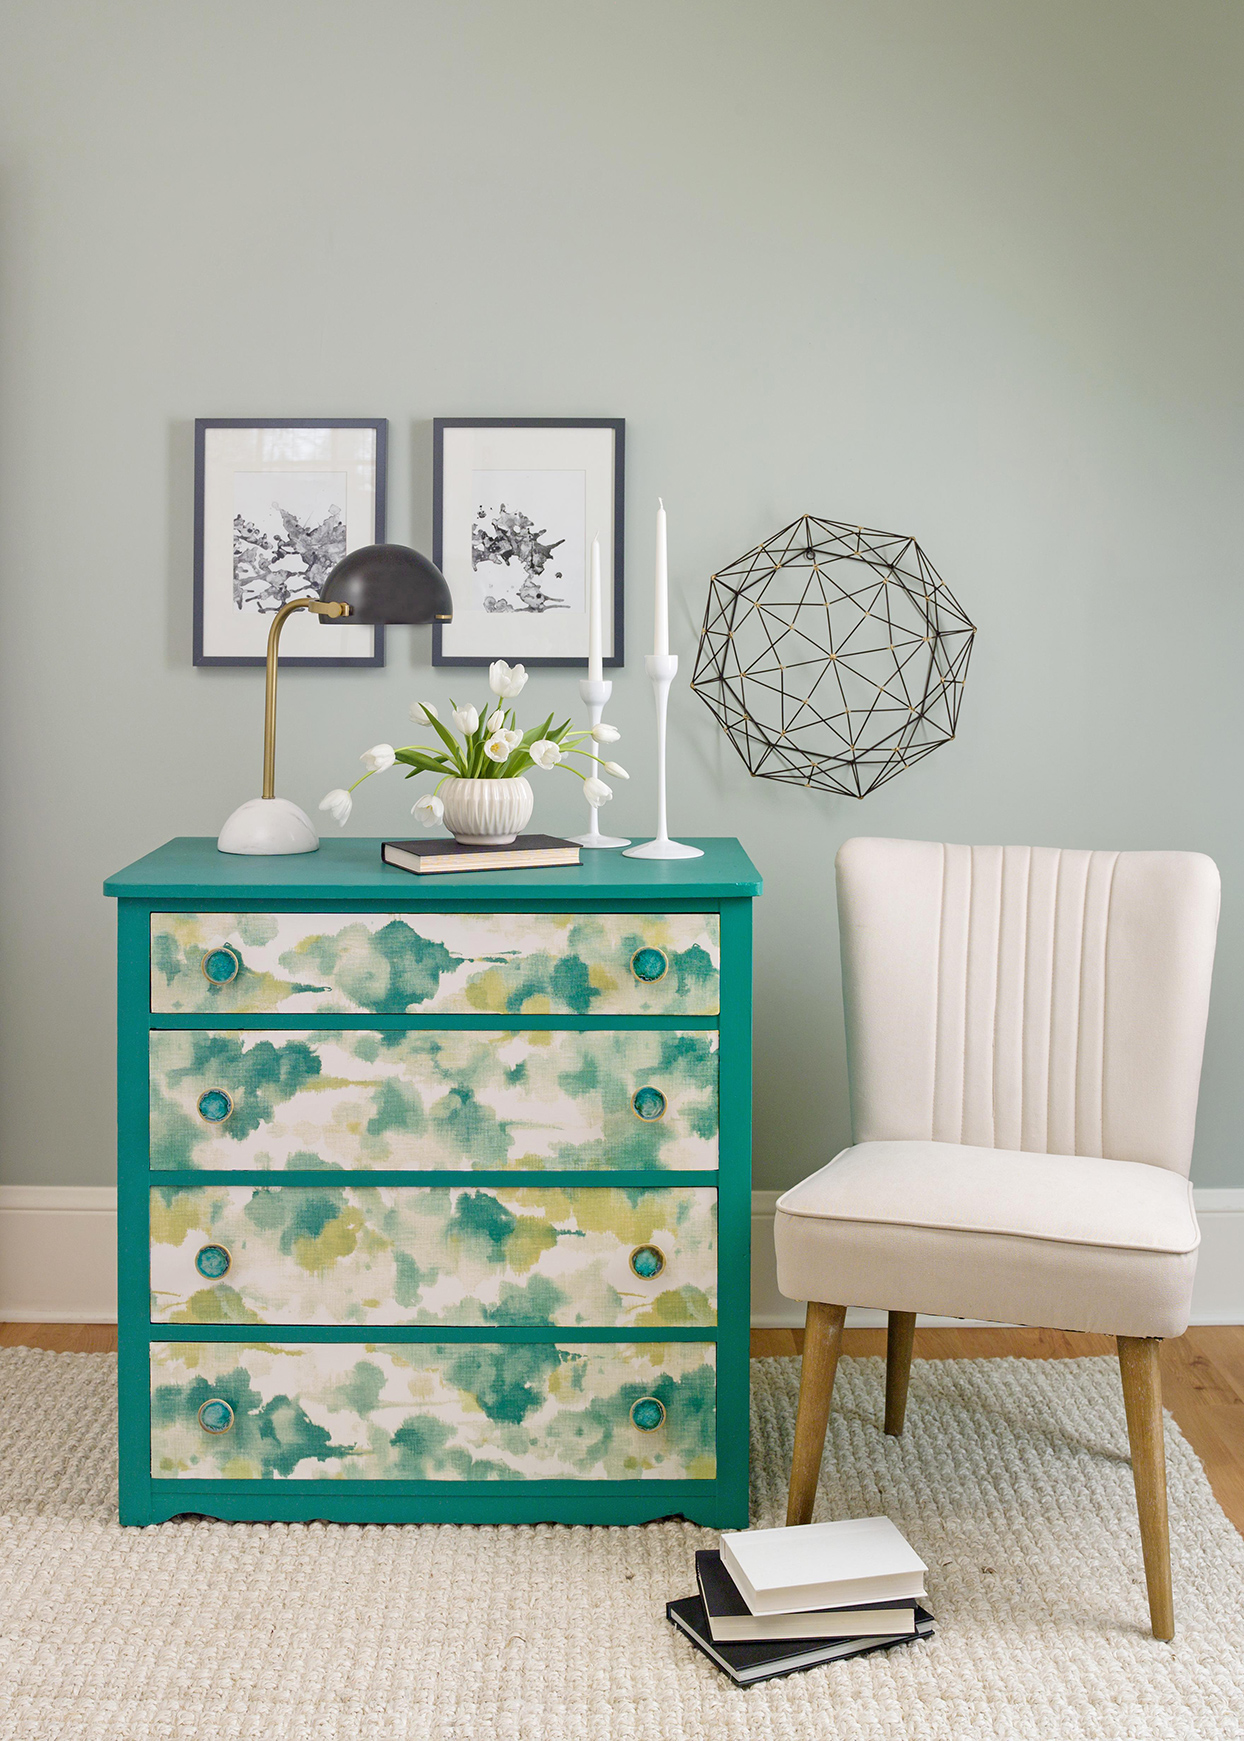 Best Dresser Makeovers Ideas For Old or Unused Furniture 1244x1741